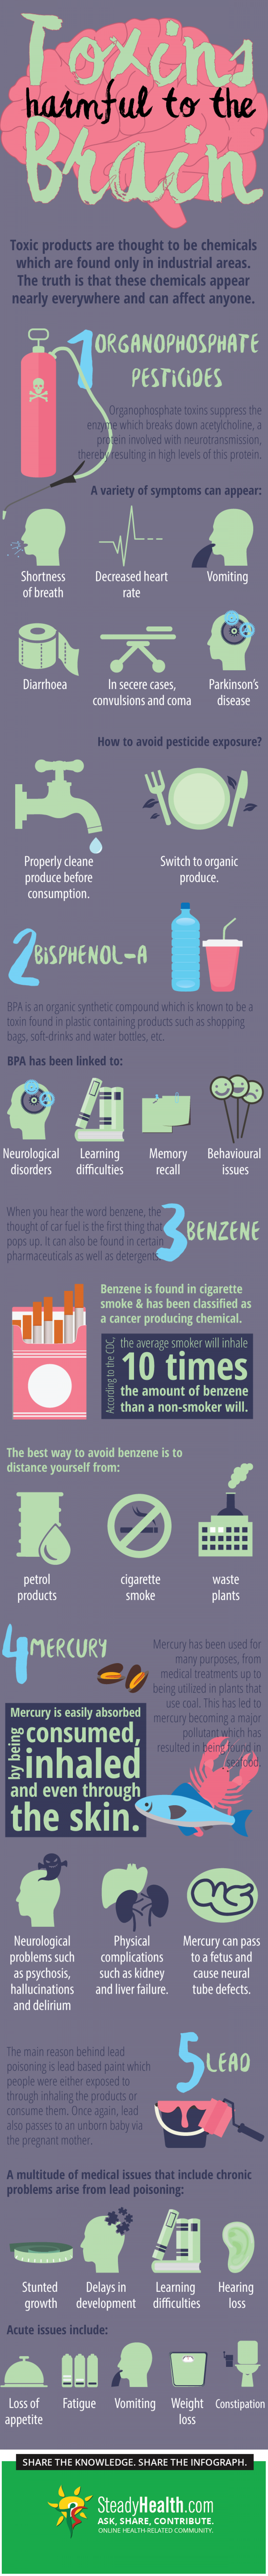 Being Aware Of Toxins That Can Be Harmful To The Brain Infographic